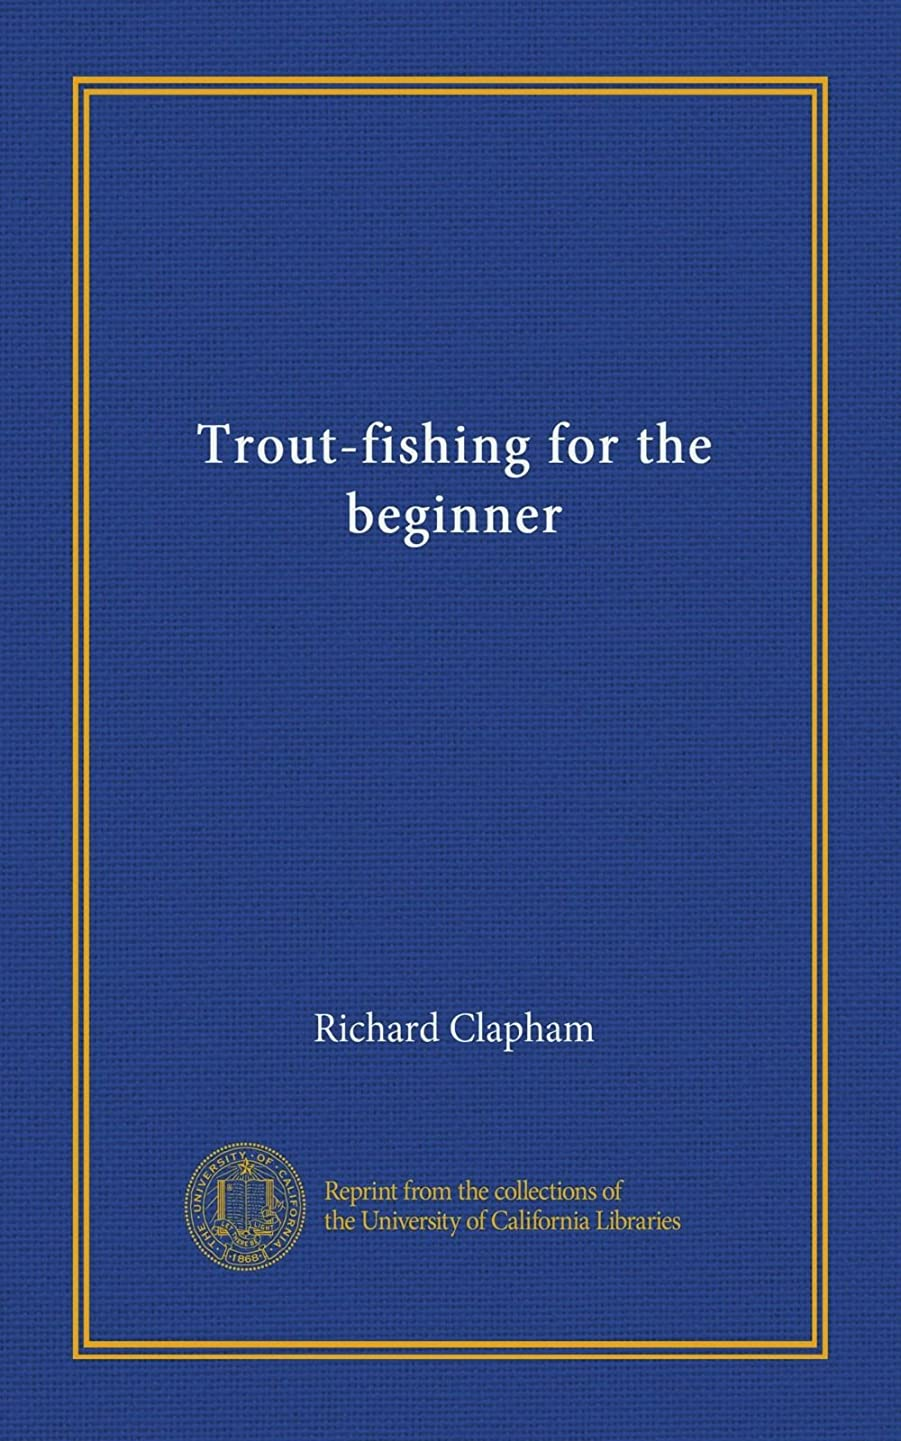 死すべき一人で違法Trout-fishing for the beginner